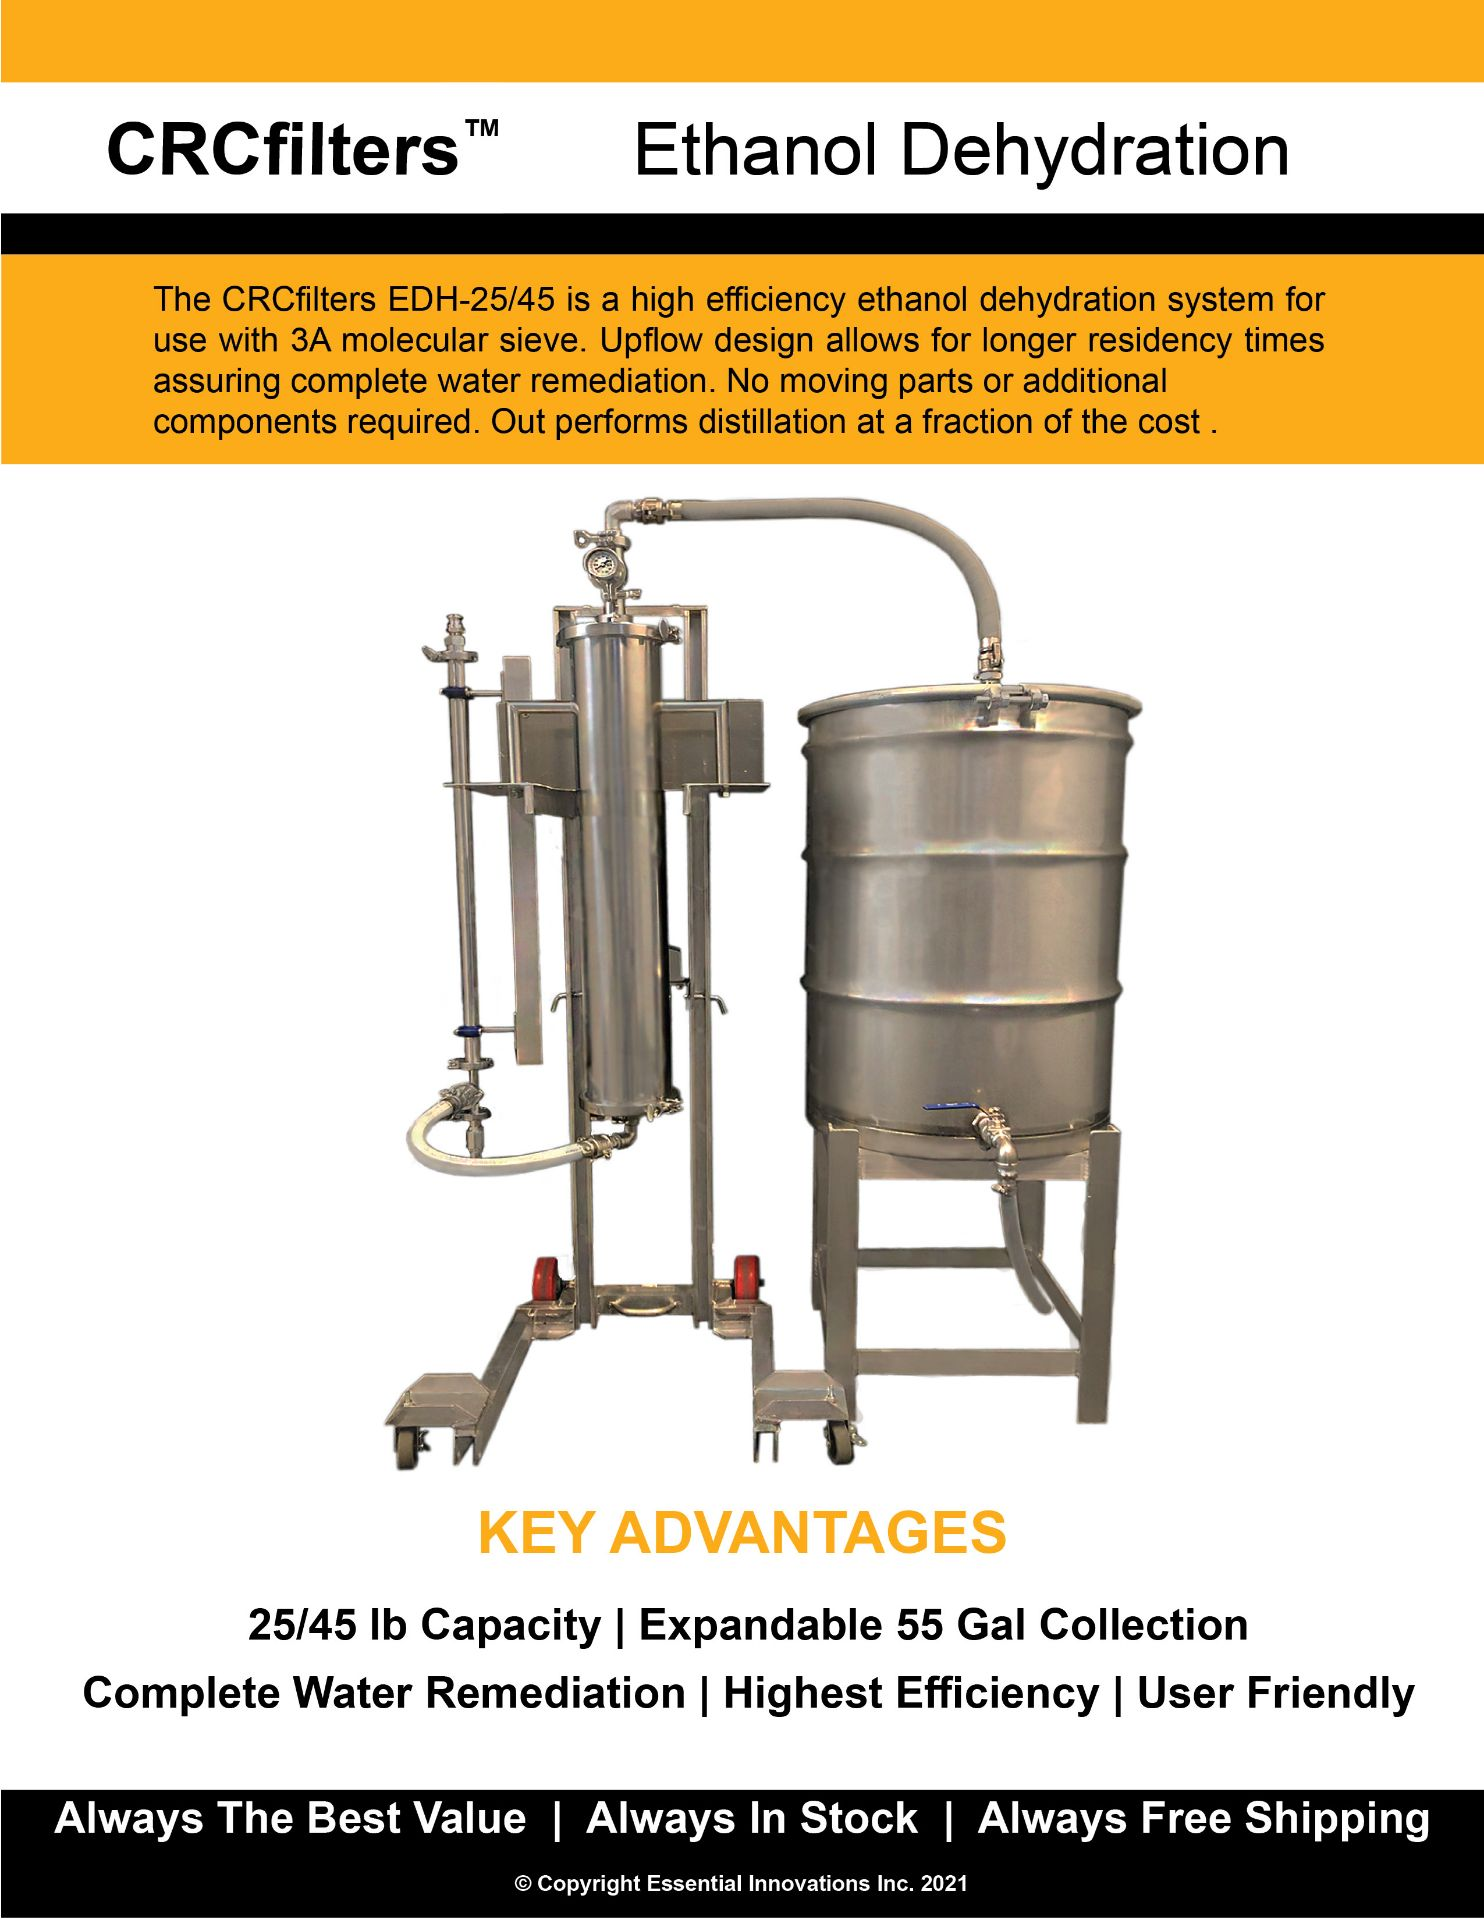 Used/Refurbished-CRCfilters Ethanol Dehydration System EDH-25. 25lb capacity 55 gal collection drum. - Image 5 of 6